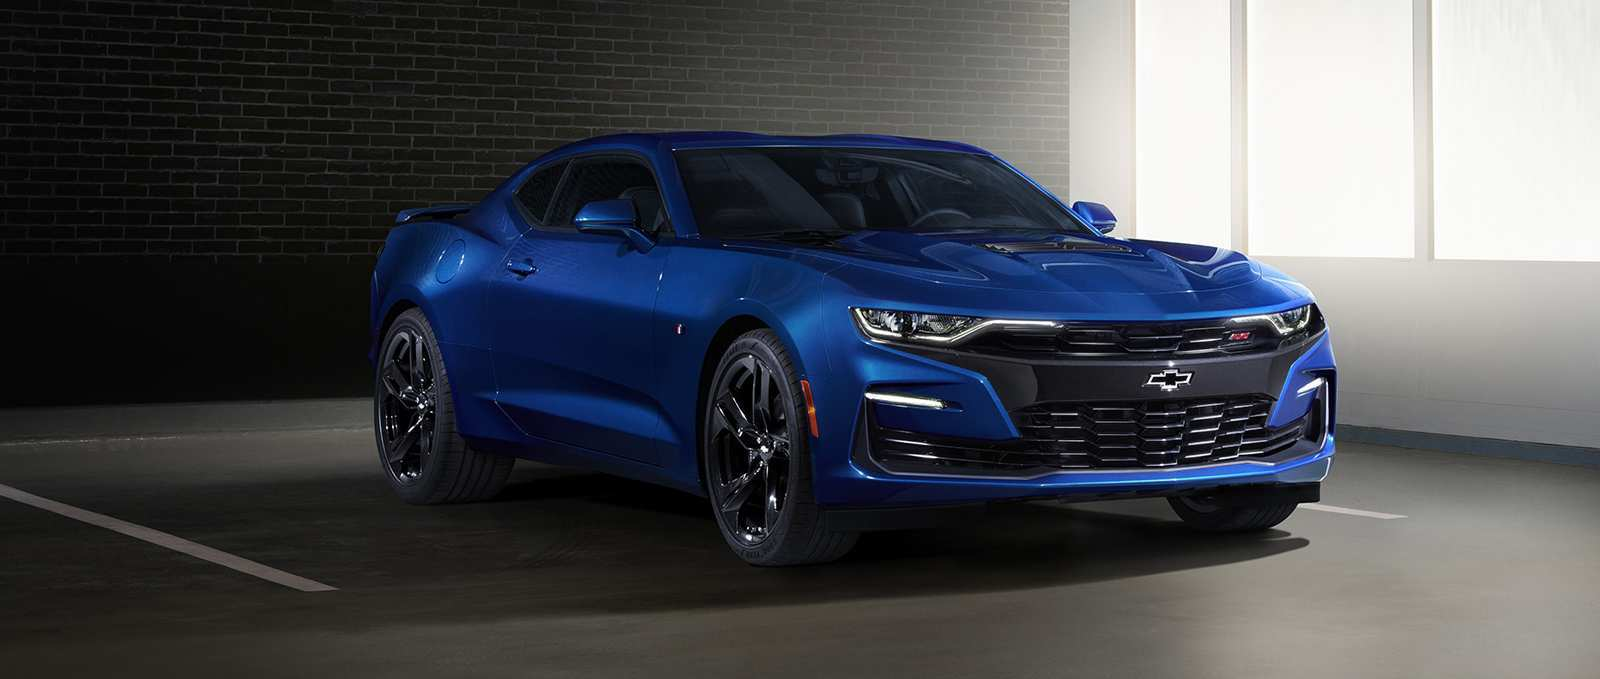 29 All New New Chevrolet New Models 2019 Release Date Price And Review Reviews for New Chevrolet New Models 2019 Release Date Price And Review